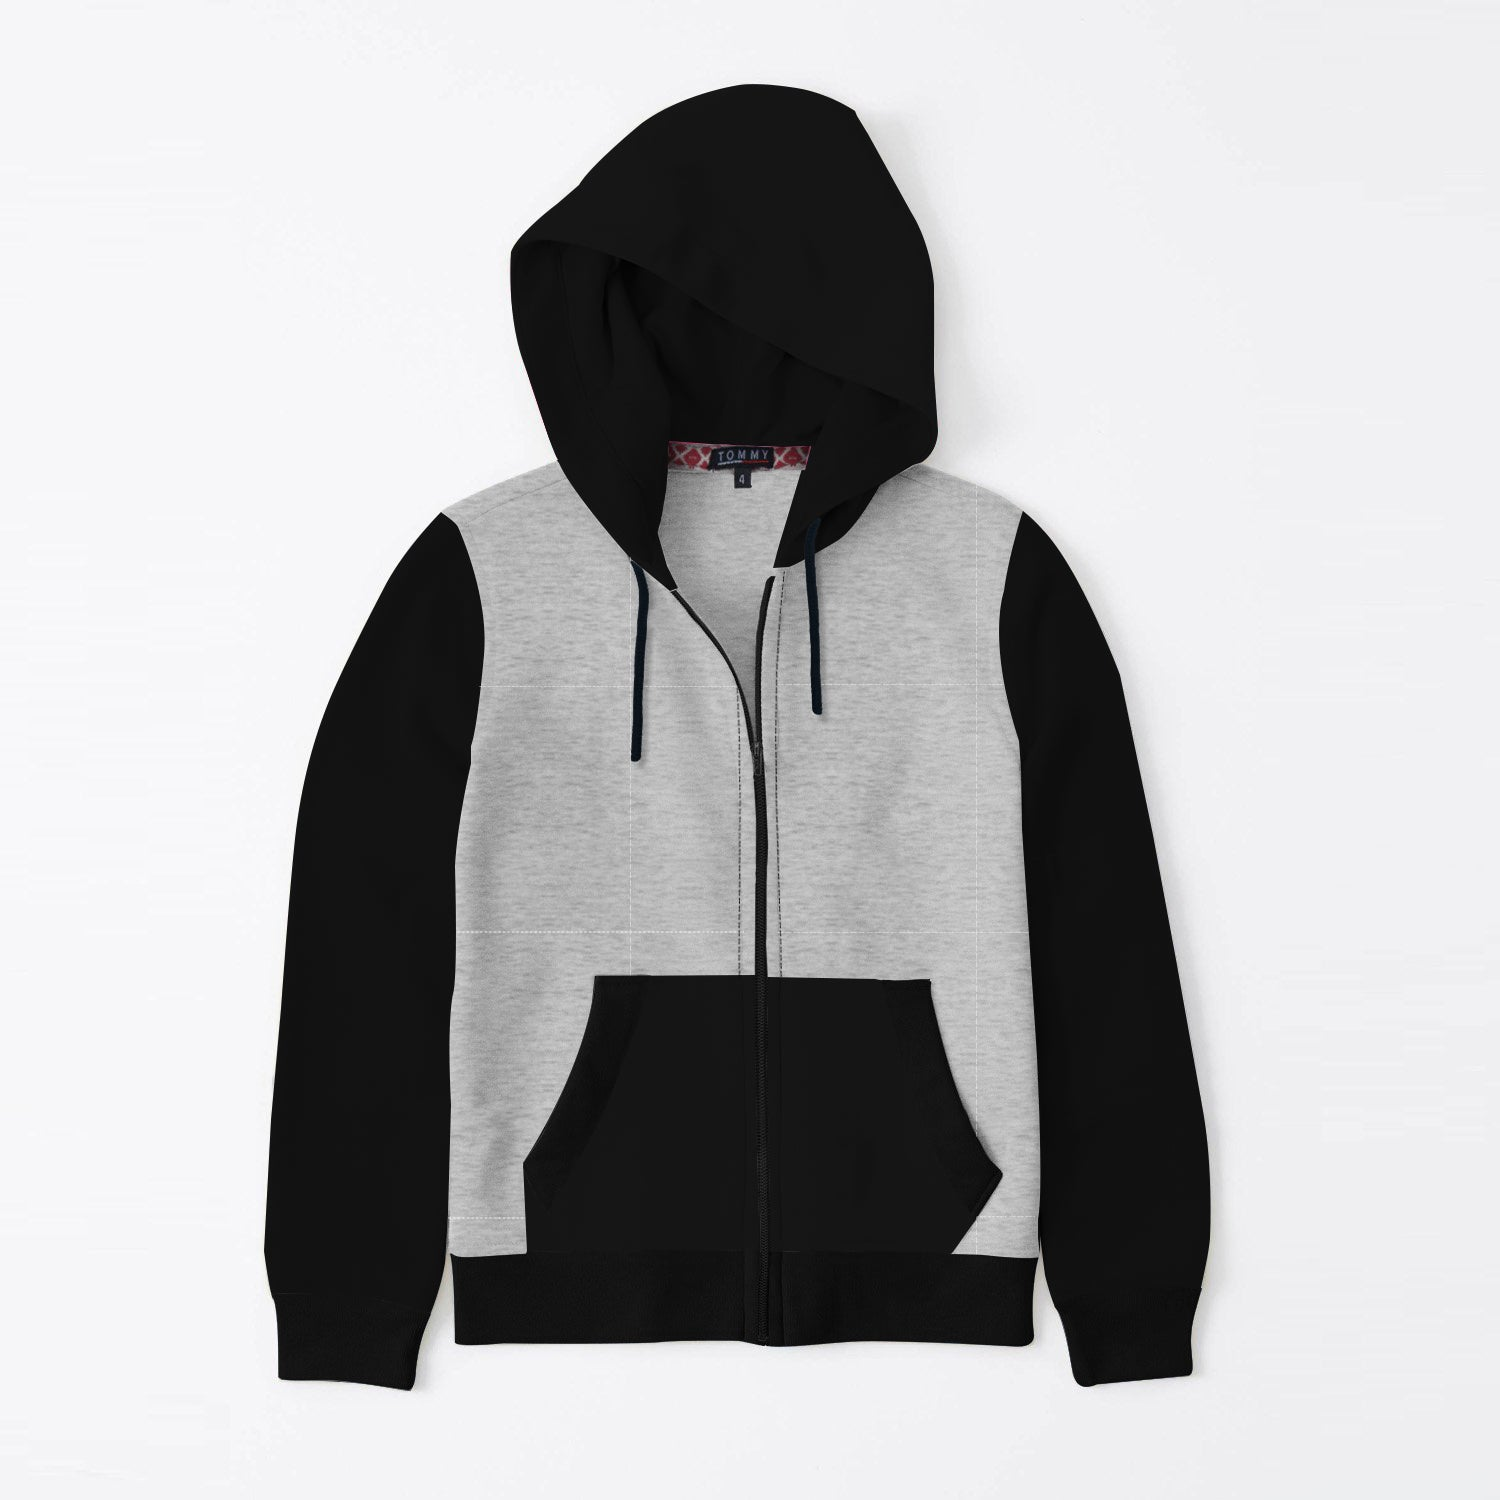 TH Quilted Zipper Hoodie For Kids-Grey Melange With Black-SP3448